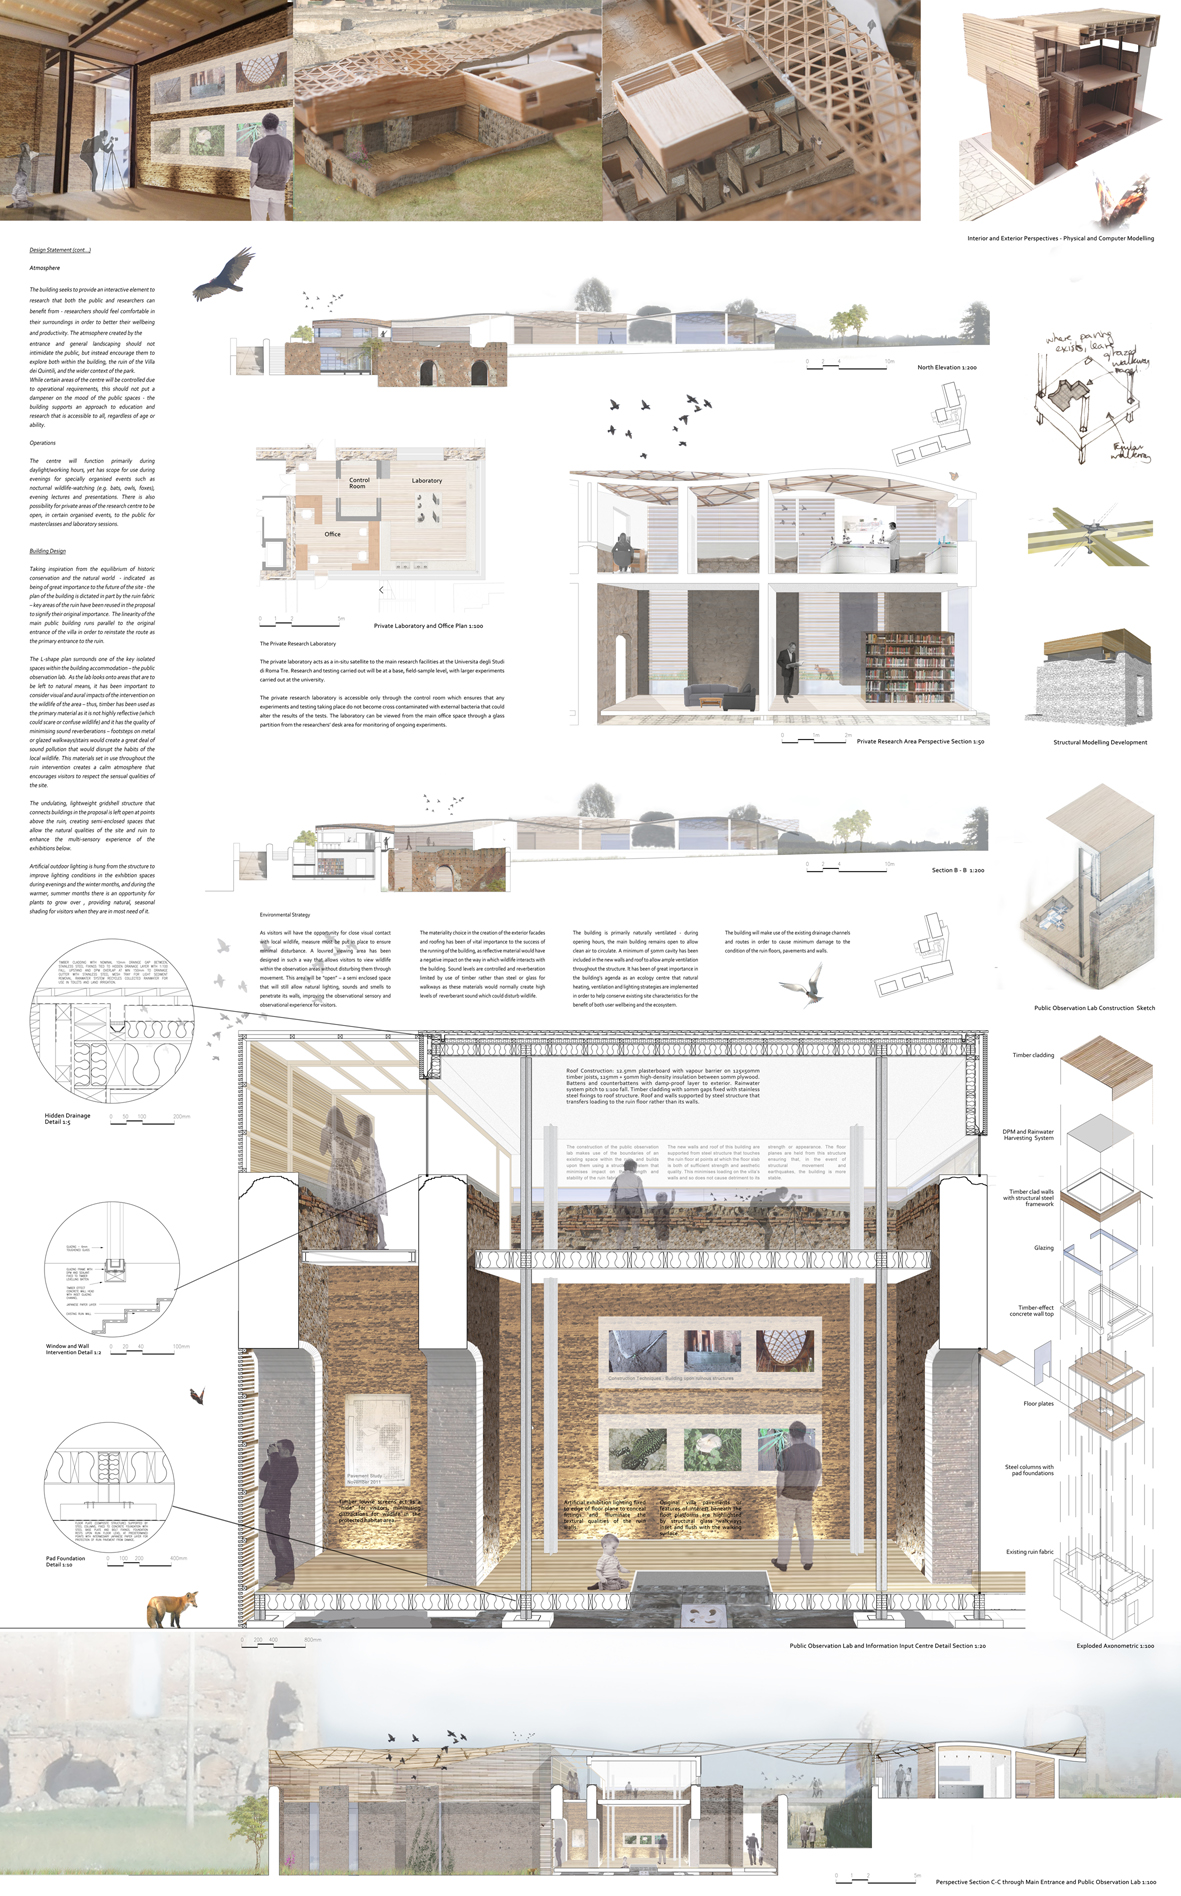 Eco librio roma the final submission catriona o 39 neill for Architecture zoning